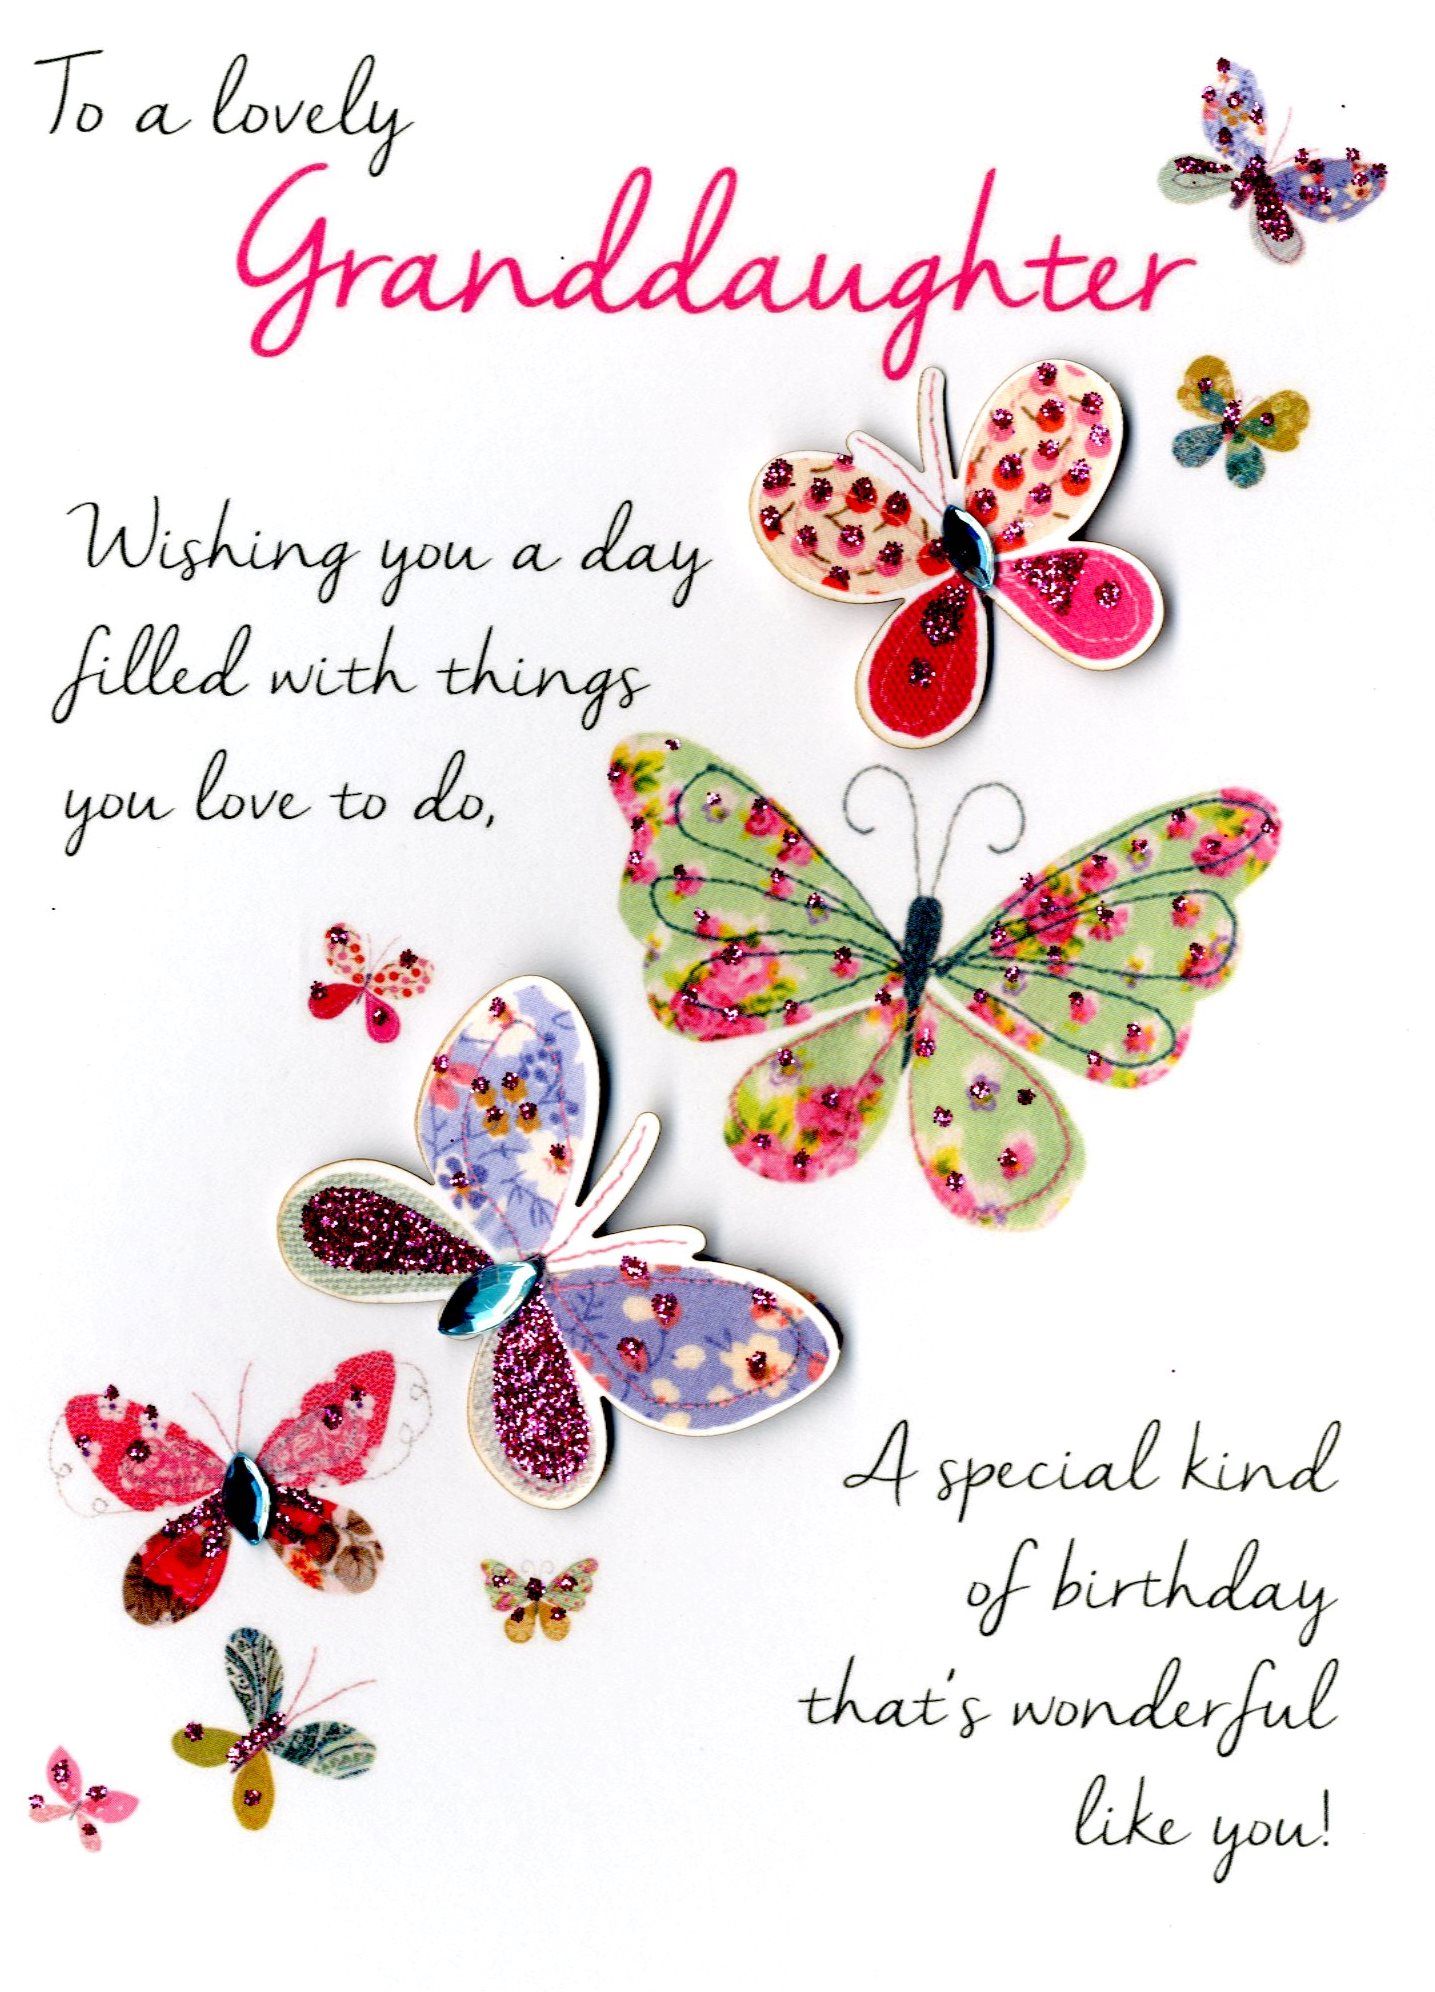 Details About Lovely Granddaughter Birthday Greeting Card Second Nature Just To Say Cards